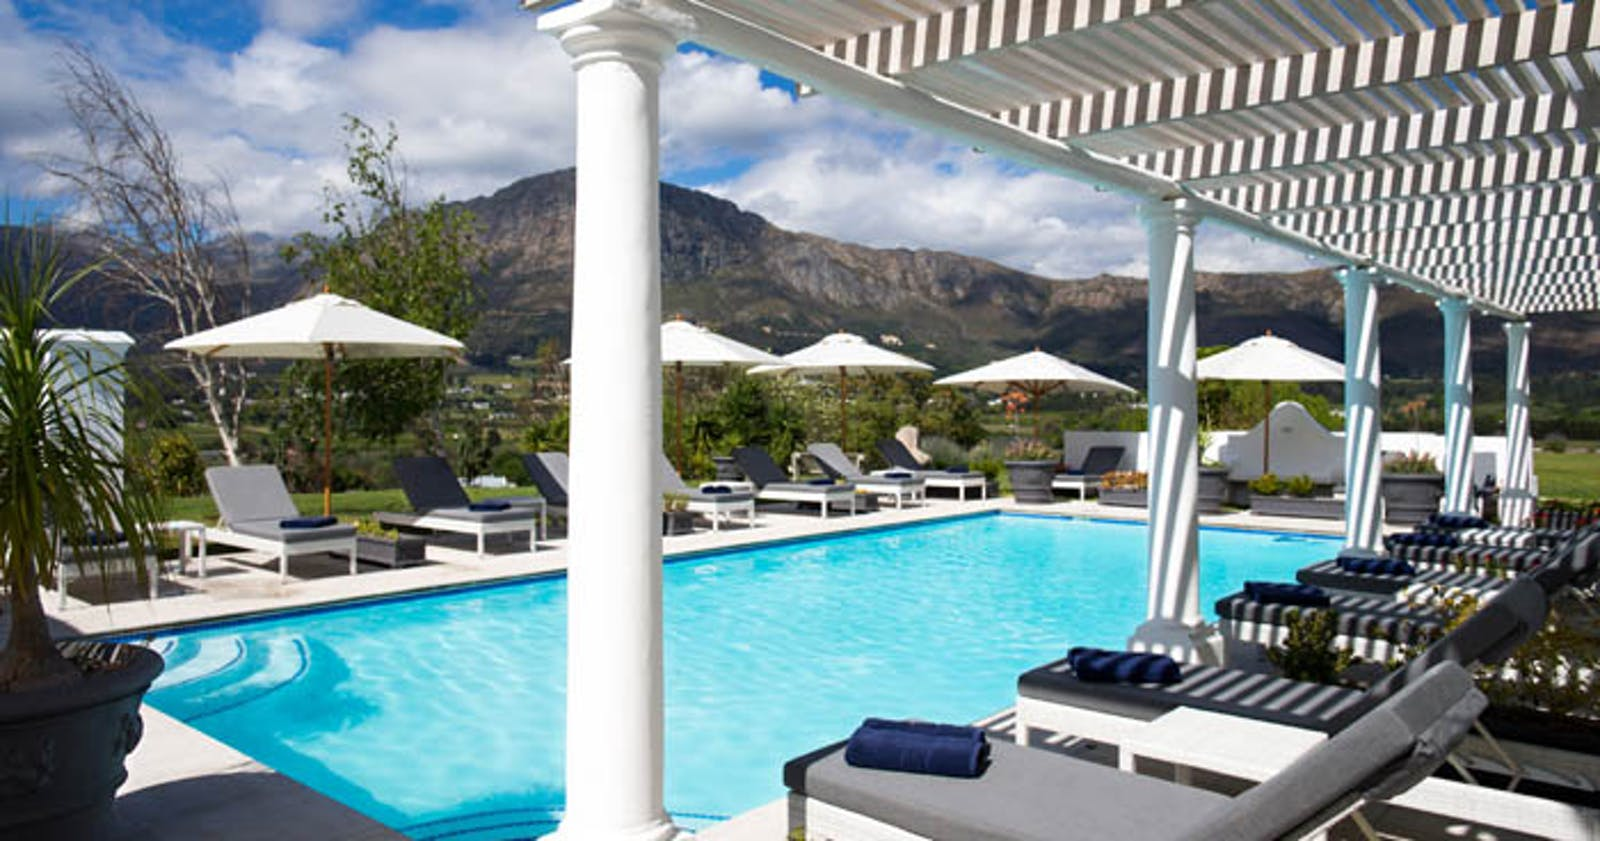 Pool at Mont Rochelle Hotel, Cape Town